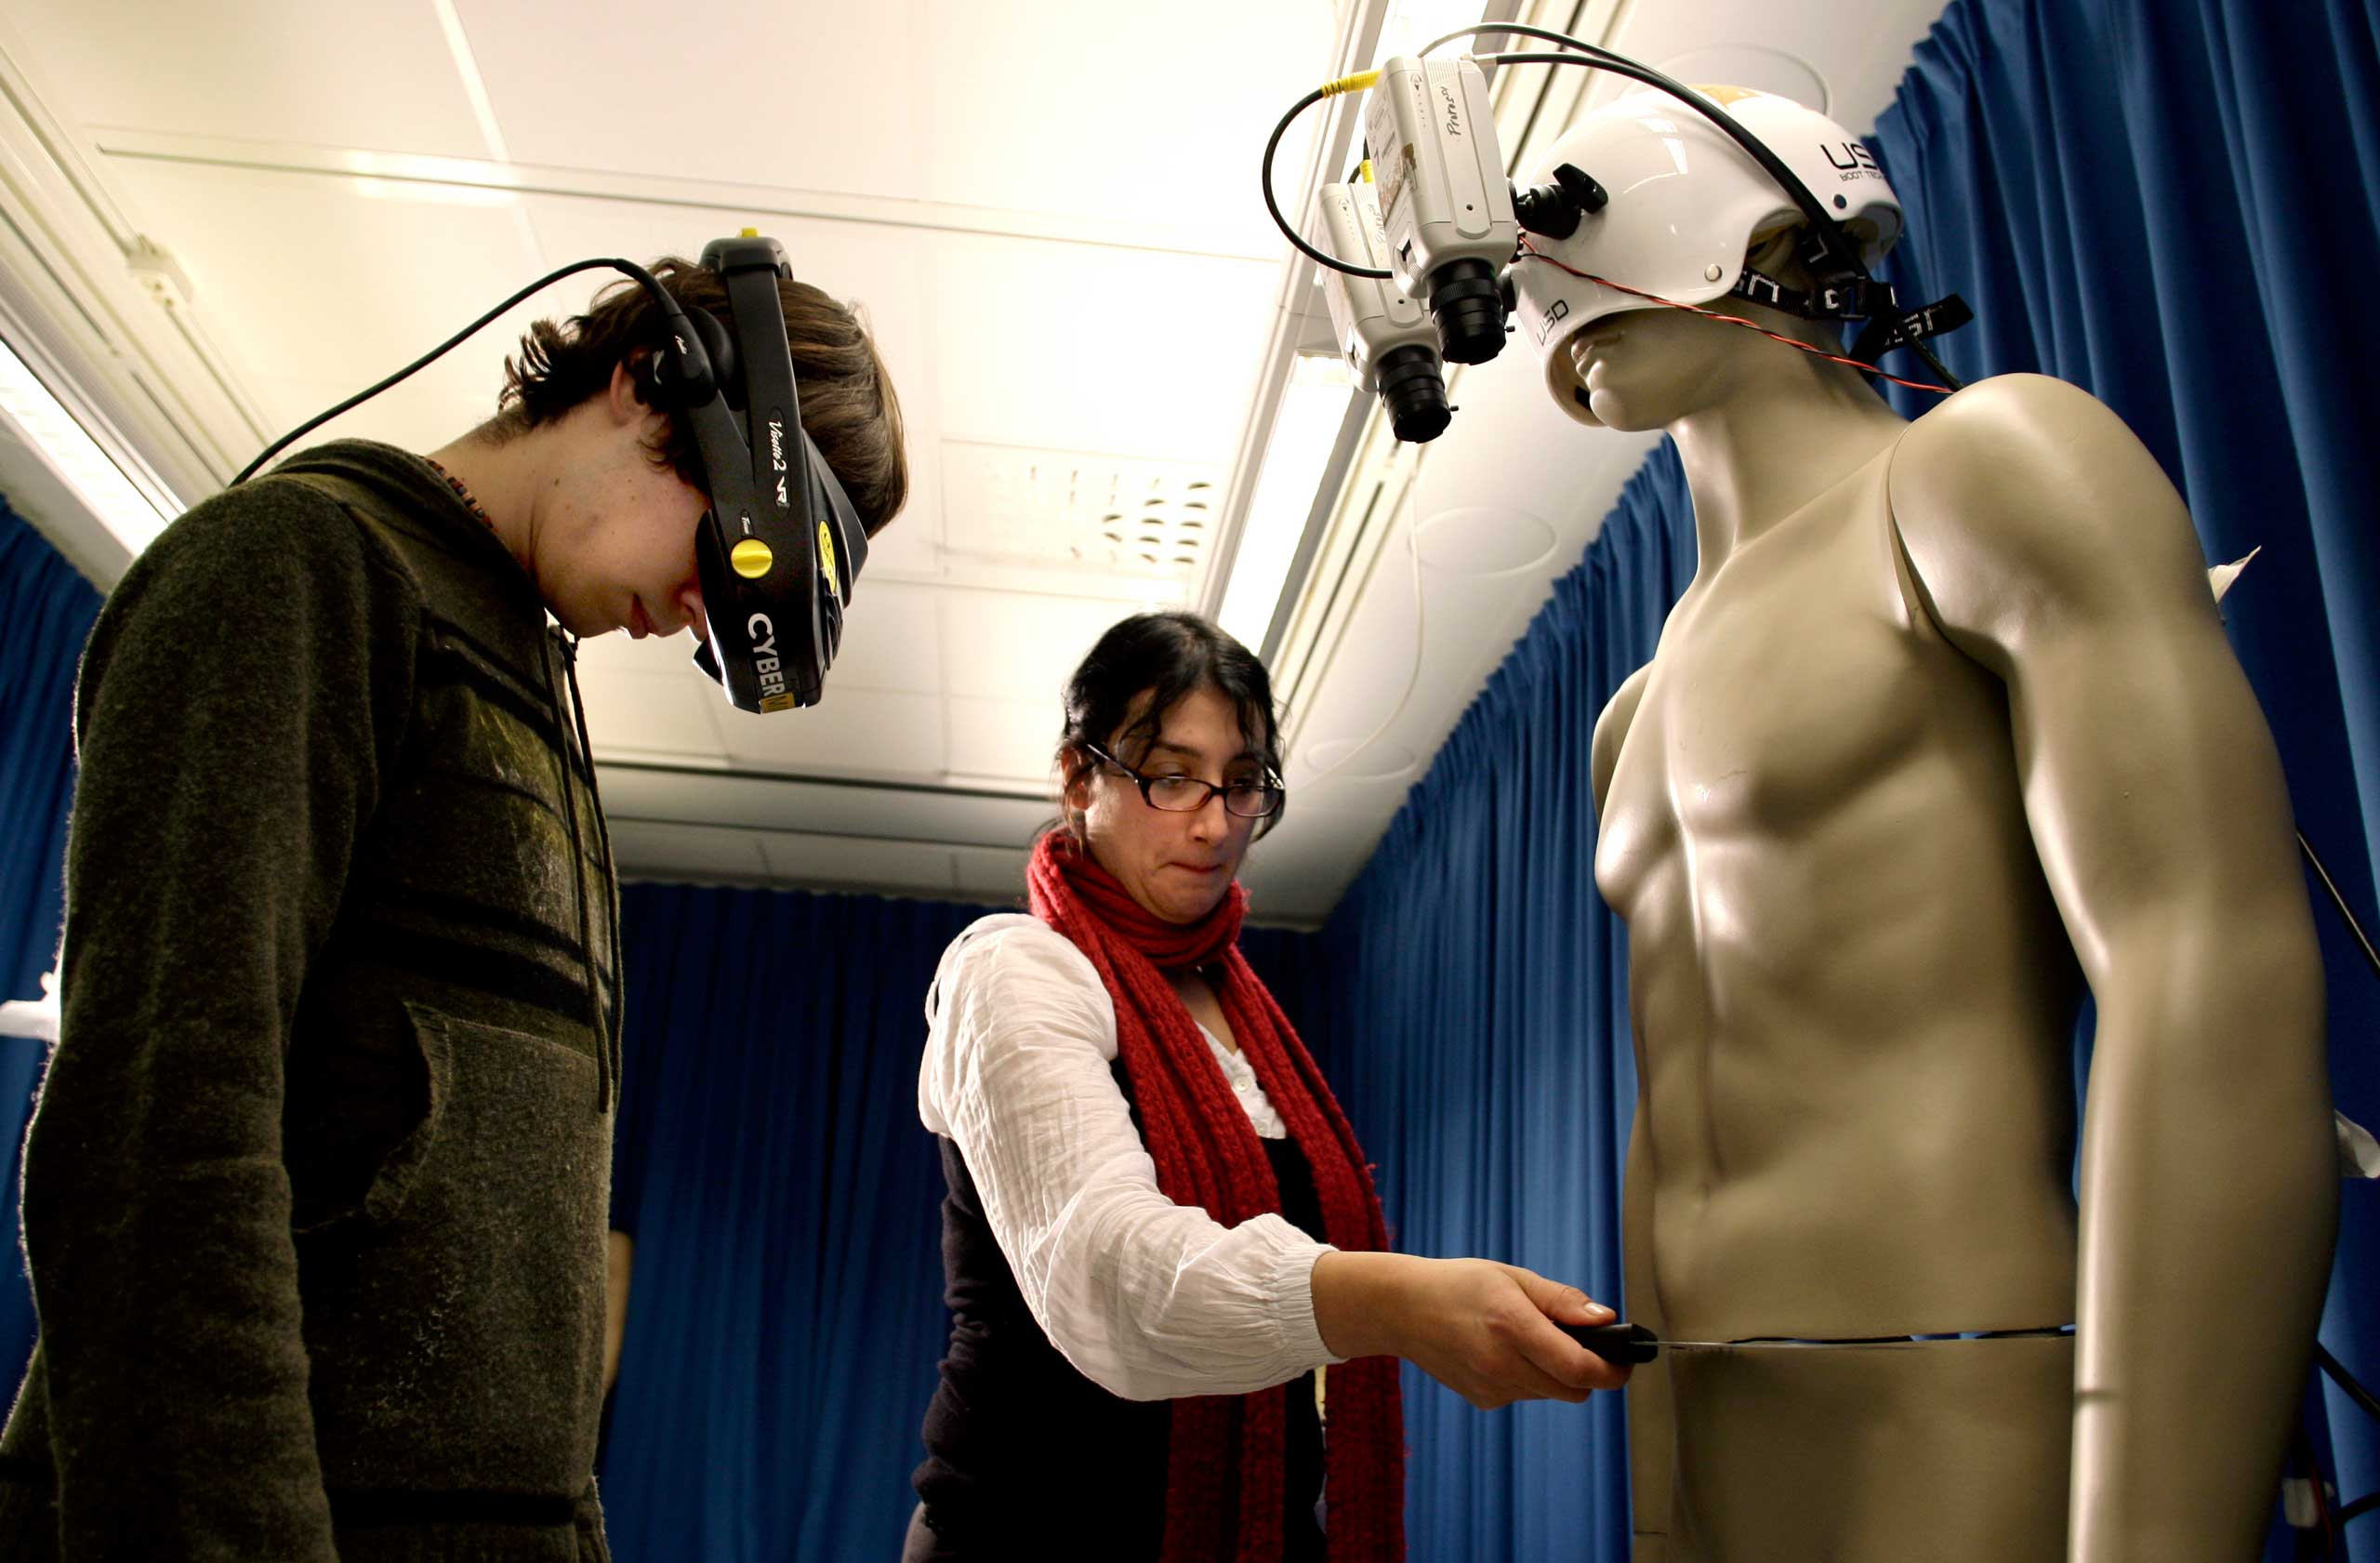 <strong>2008</strong>                                                                      Valeria Petkova, right, and student Andrew Ketterer, left, of the Karolinska Institute in Stockholm, tested the 'body-swap' illusion, a method whereby people can experience the illusion that either a mannequin or another person's body is their own body.